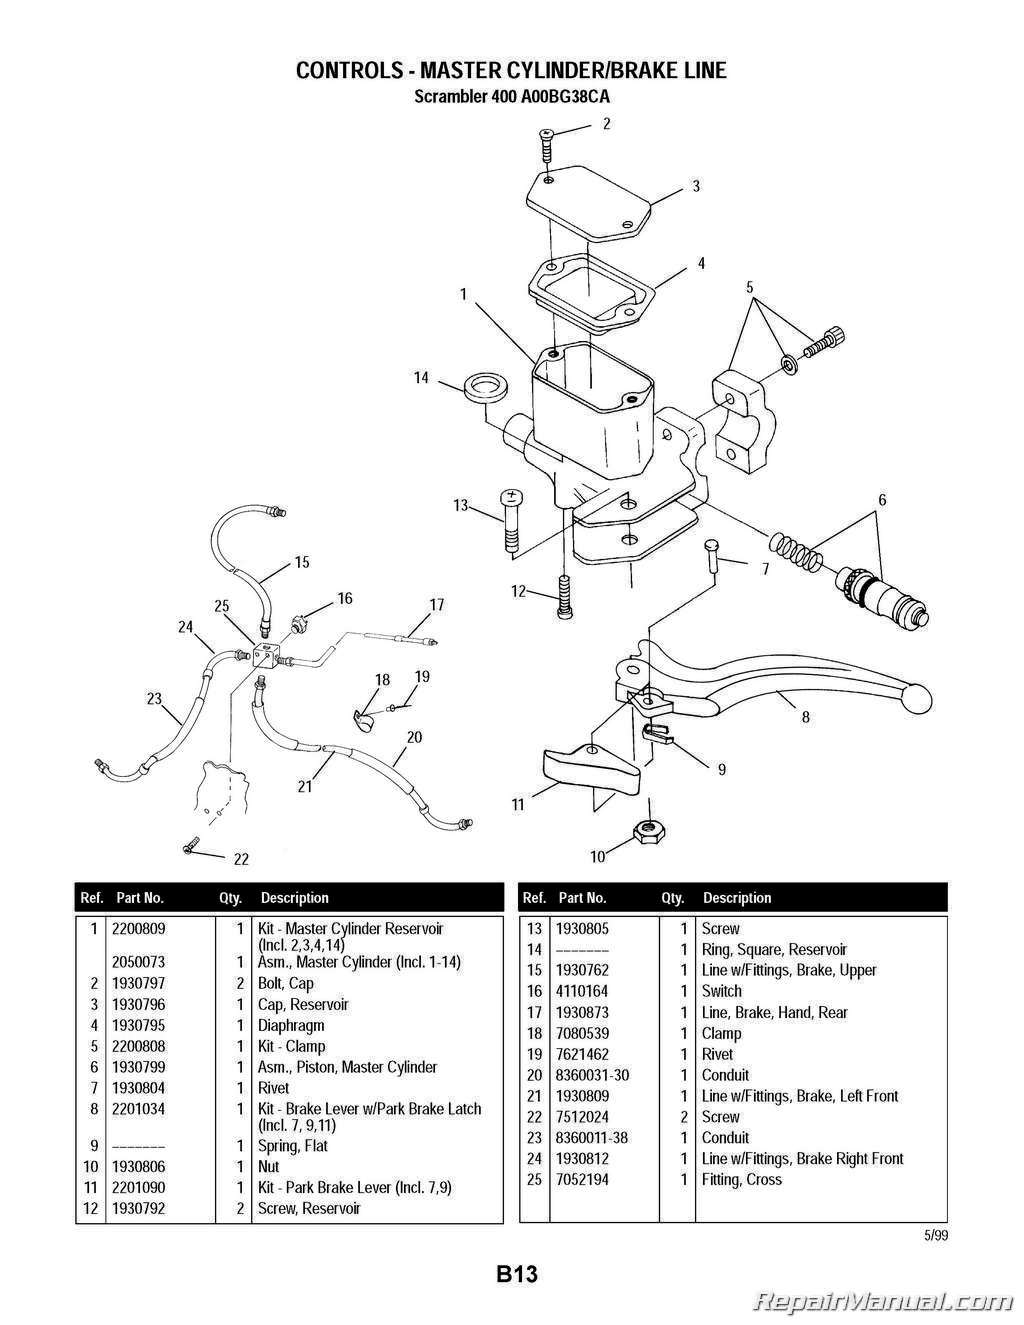 2005 polaris sportsman 400 parts diagram